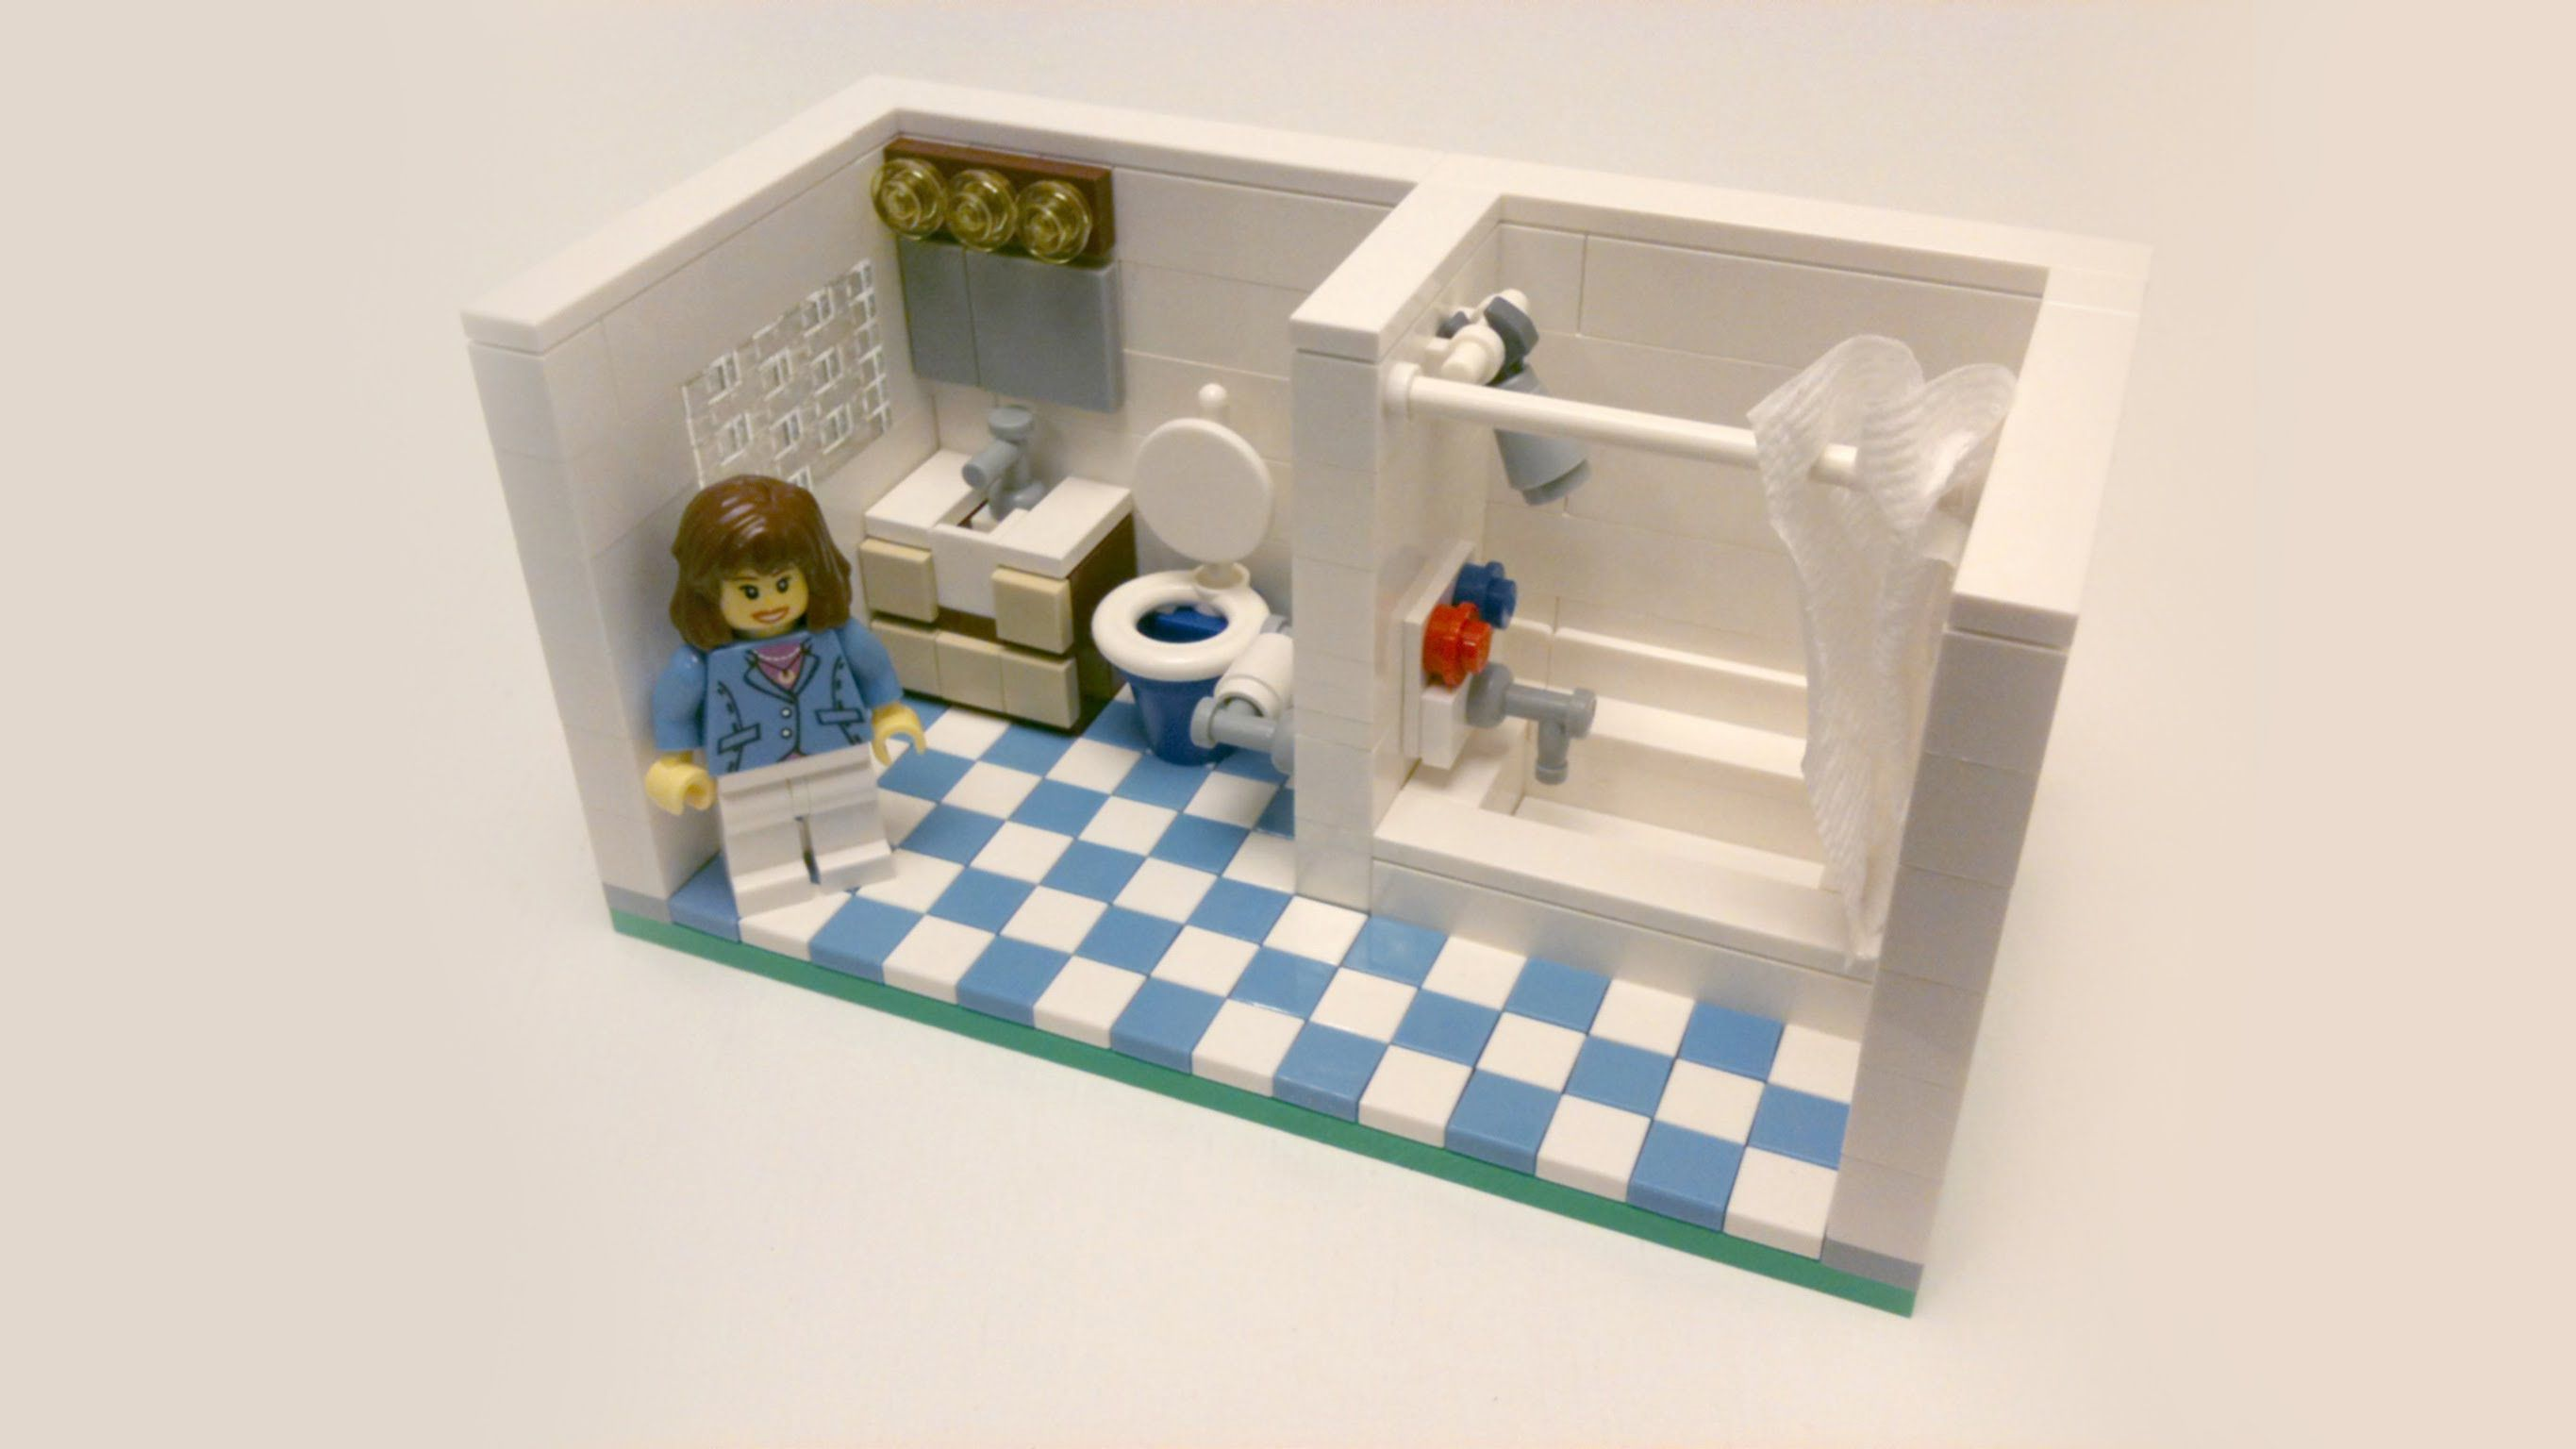 Lego Bedroom Furniture a complete tutorial on a guest bathroom which includes, a block